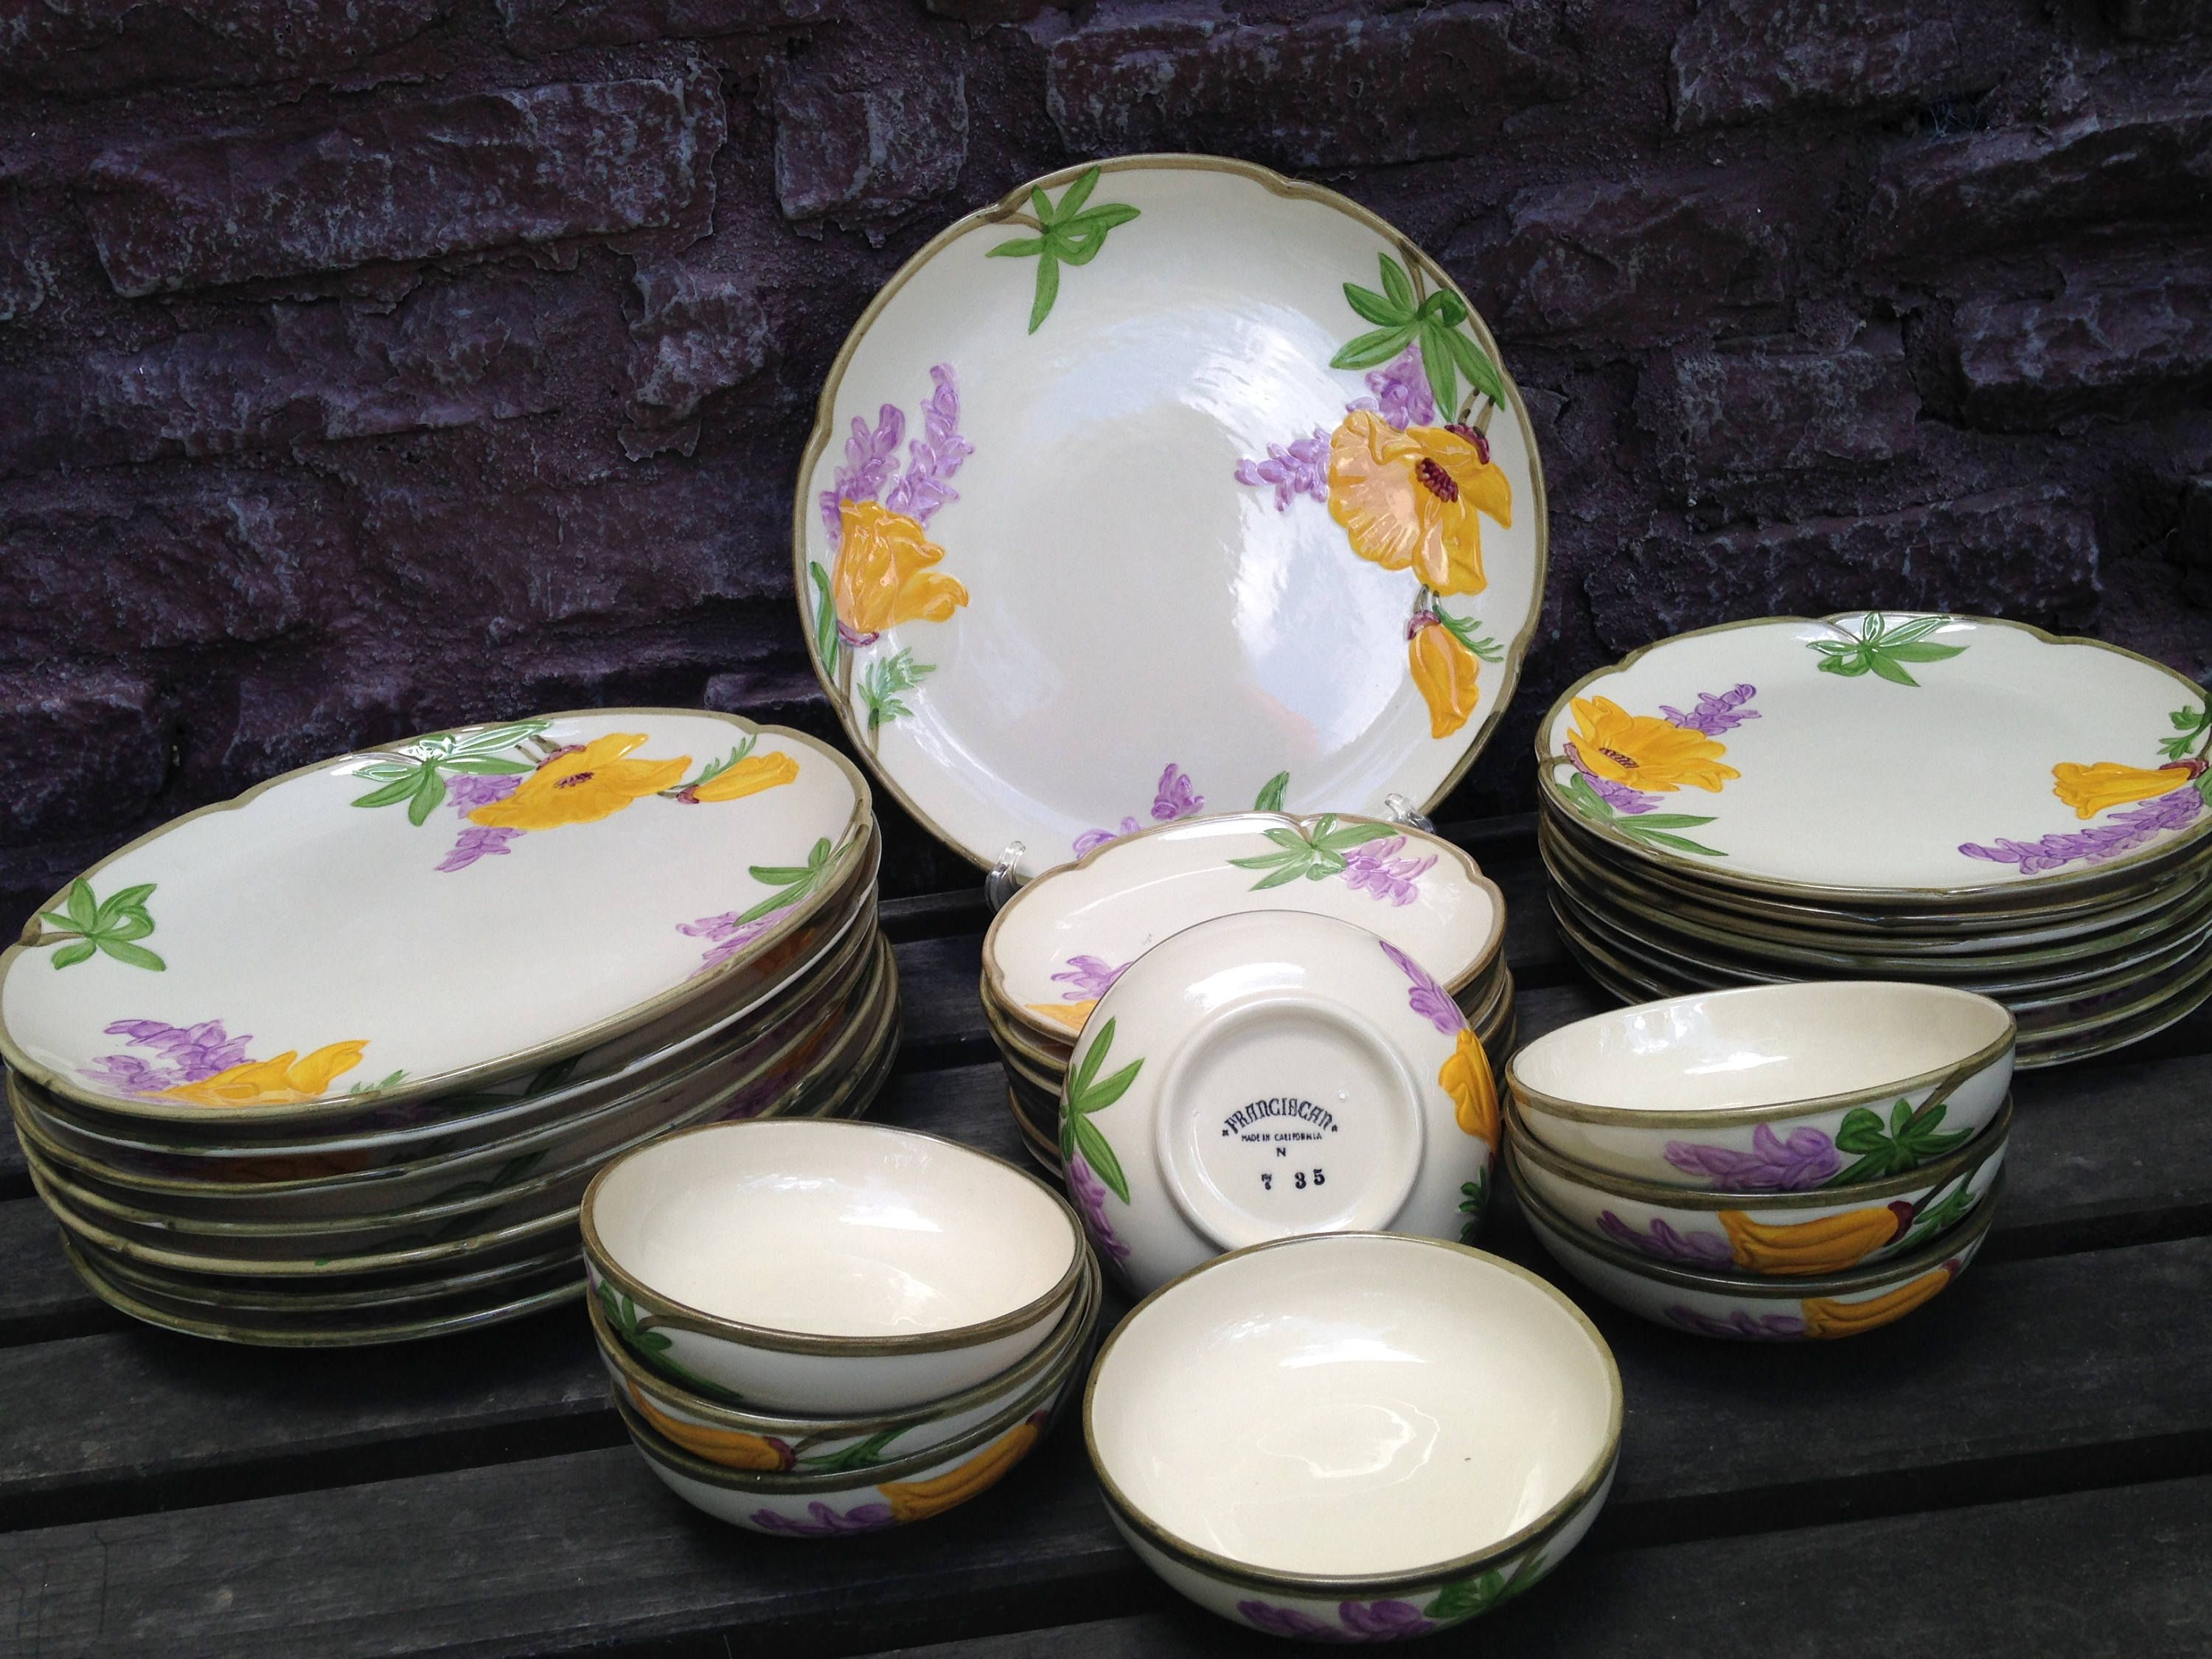 Franciscan California Poppy Dinnerware Set for 8 - 32 Pc USA 1950 ARCH Logo - RARE & Franciscan California Poppy Dinnerware Set for 8 - 32 Pc USA 1950 ...